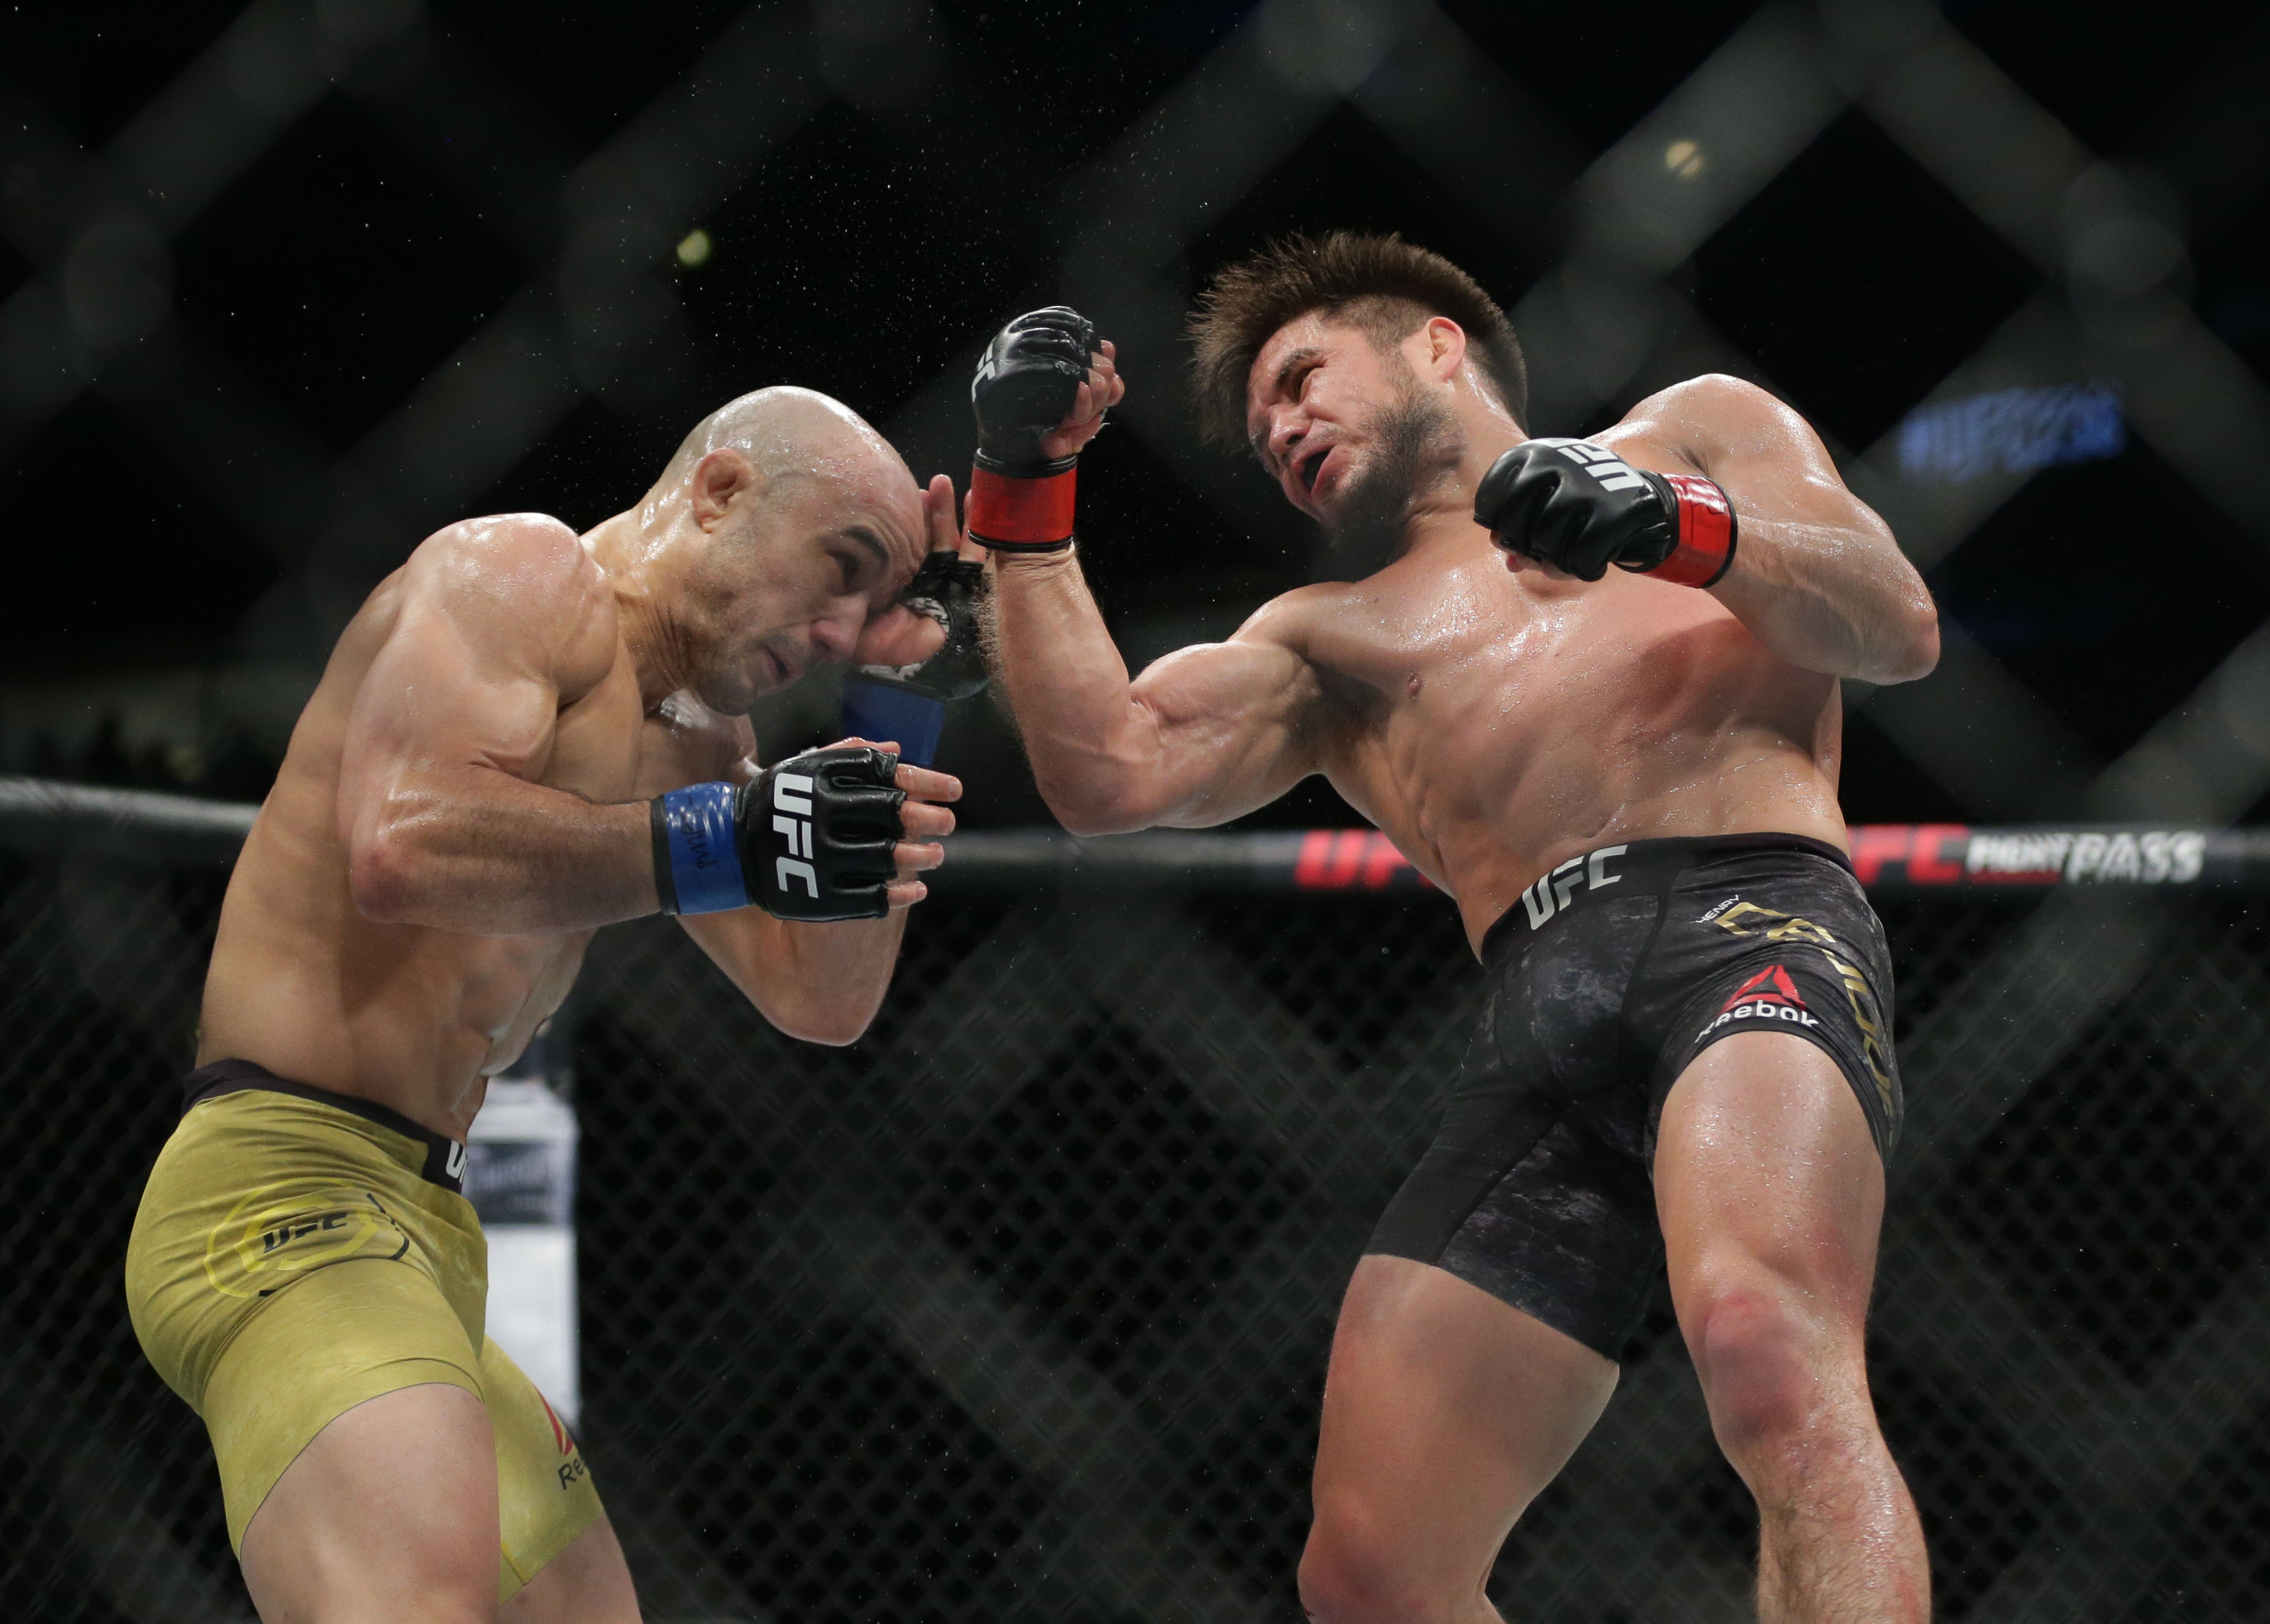 UFC 238 'Fight Motion' video: Watch Henry Cejudo take out